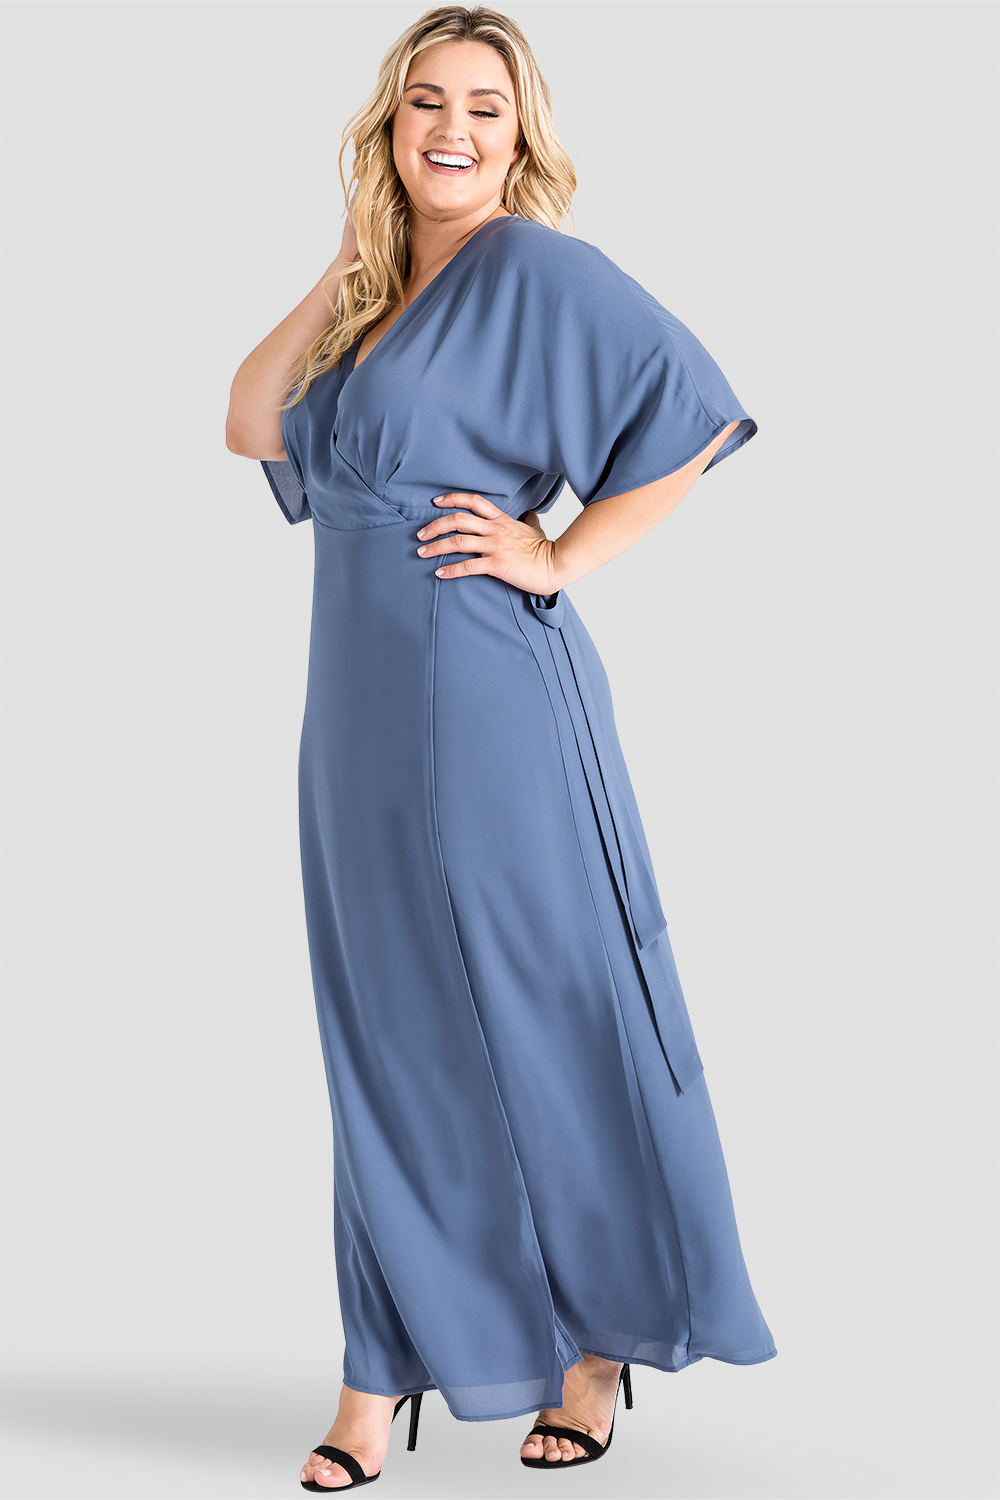 Plus Size Standards & Practices Slate Blue Chiffon Kimono Wrap Maxi Dress